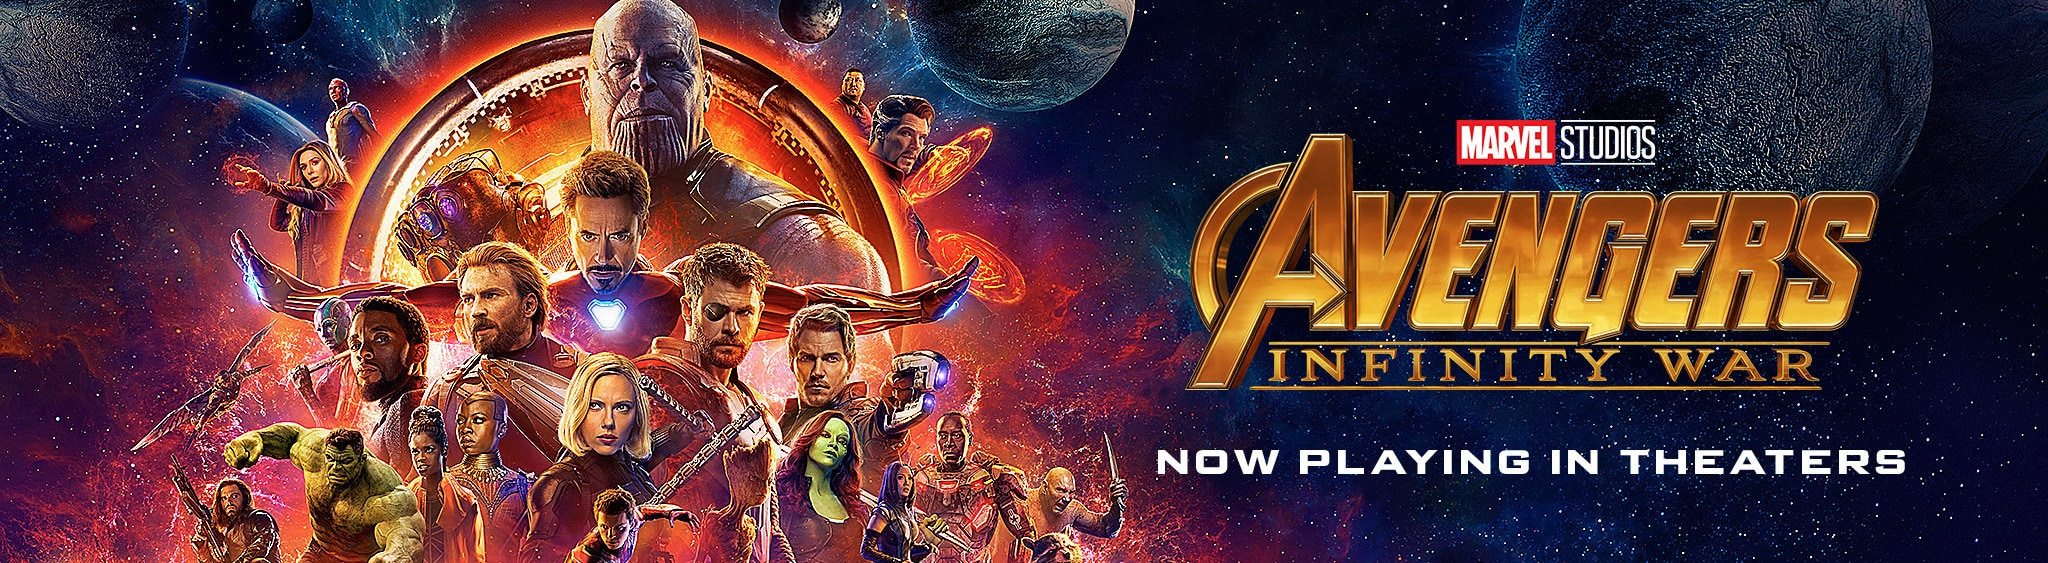 Marvel Studios Avengers Infinity War - Now Playing In Theatres